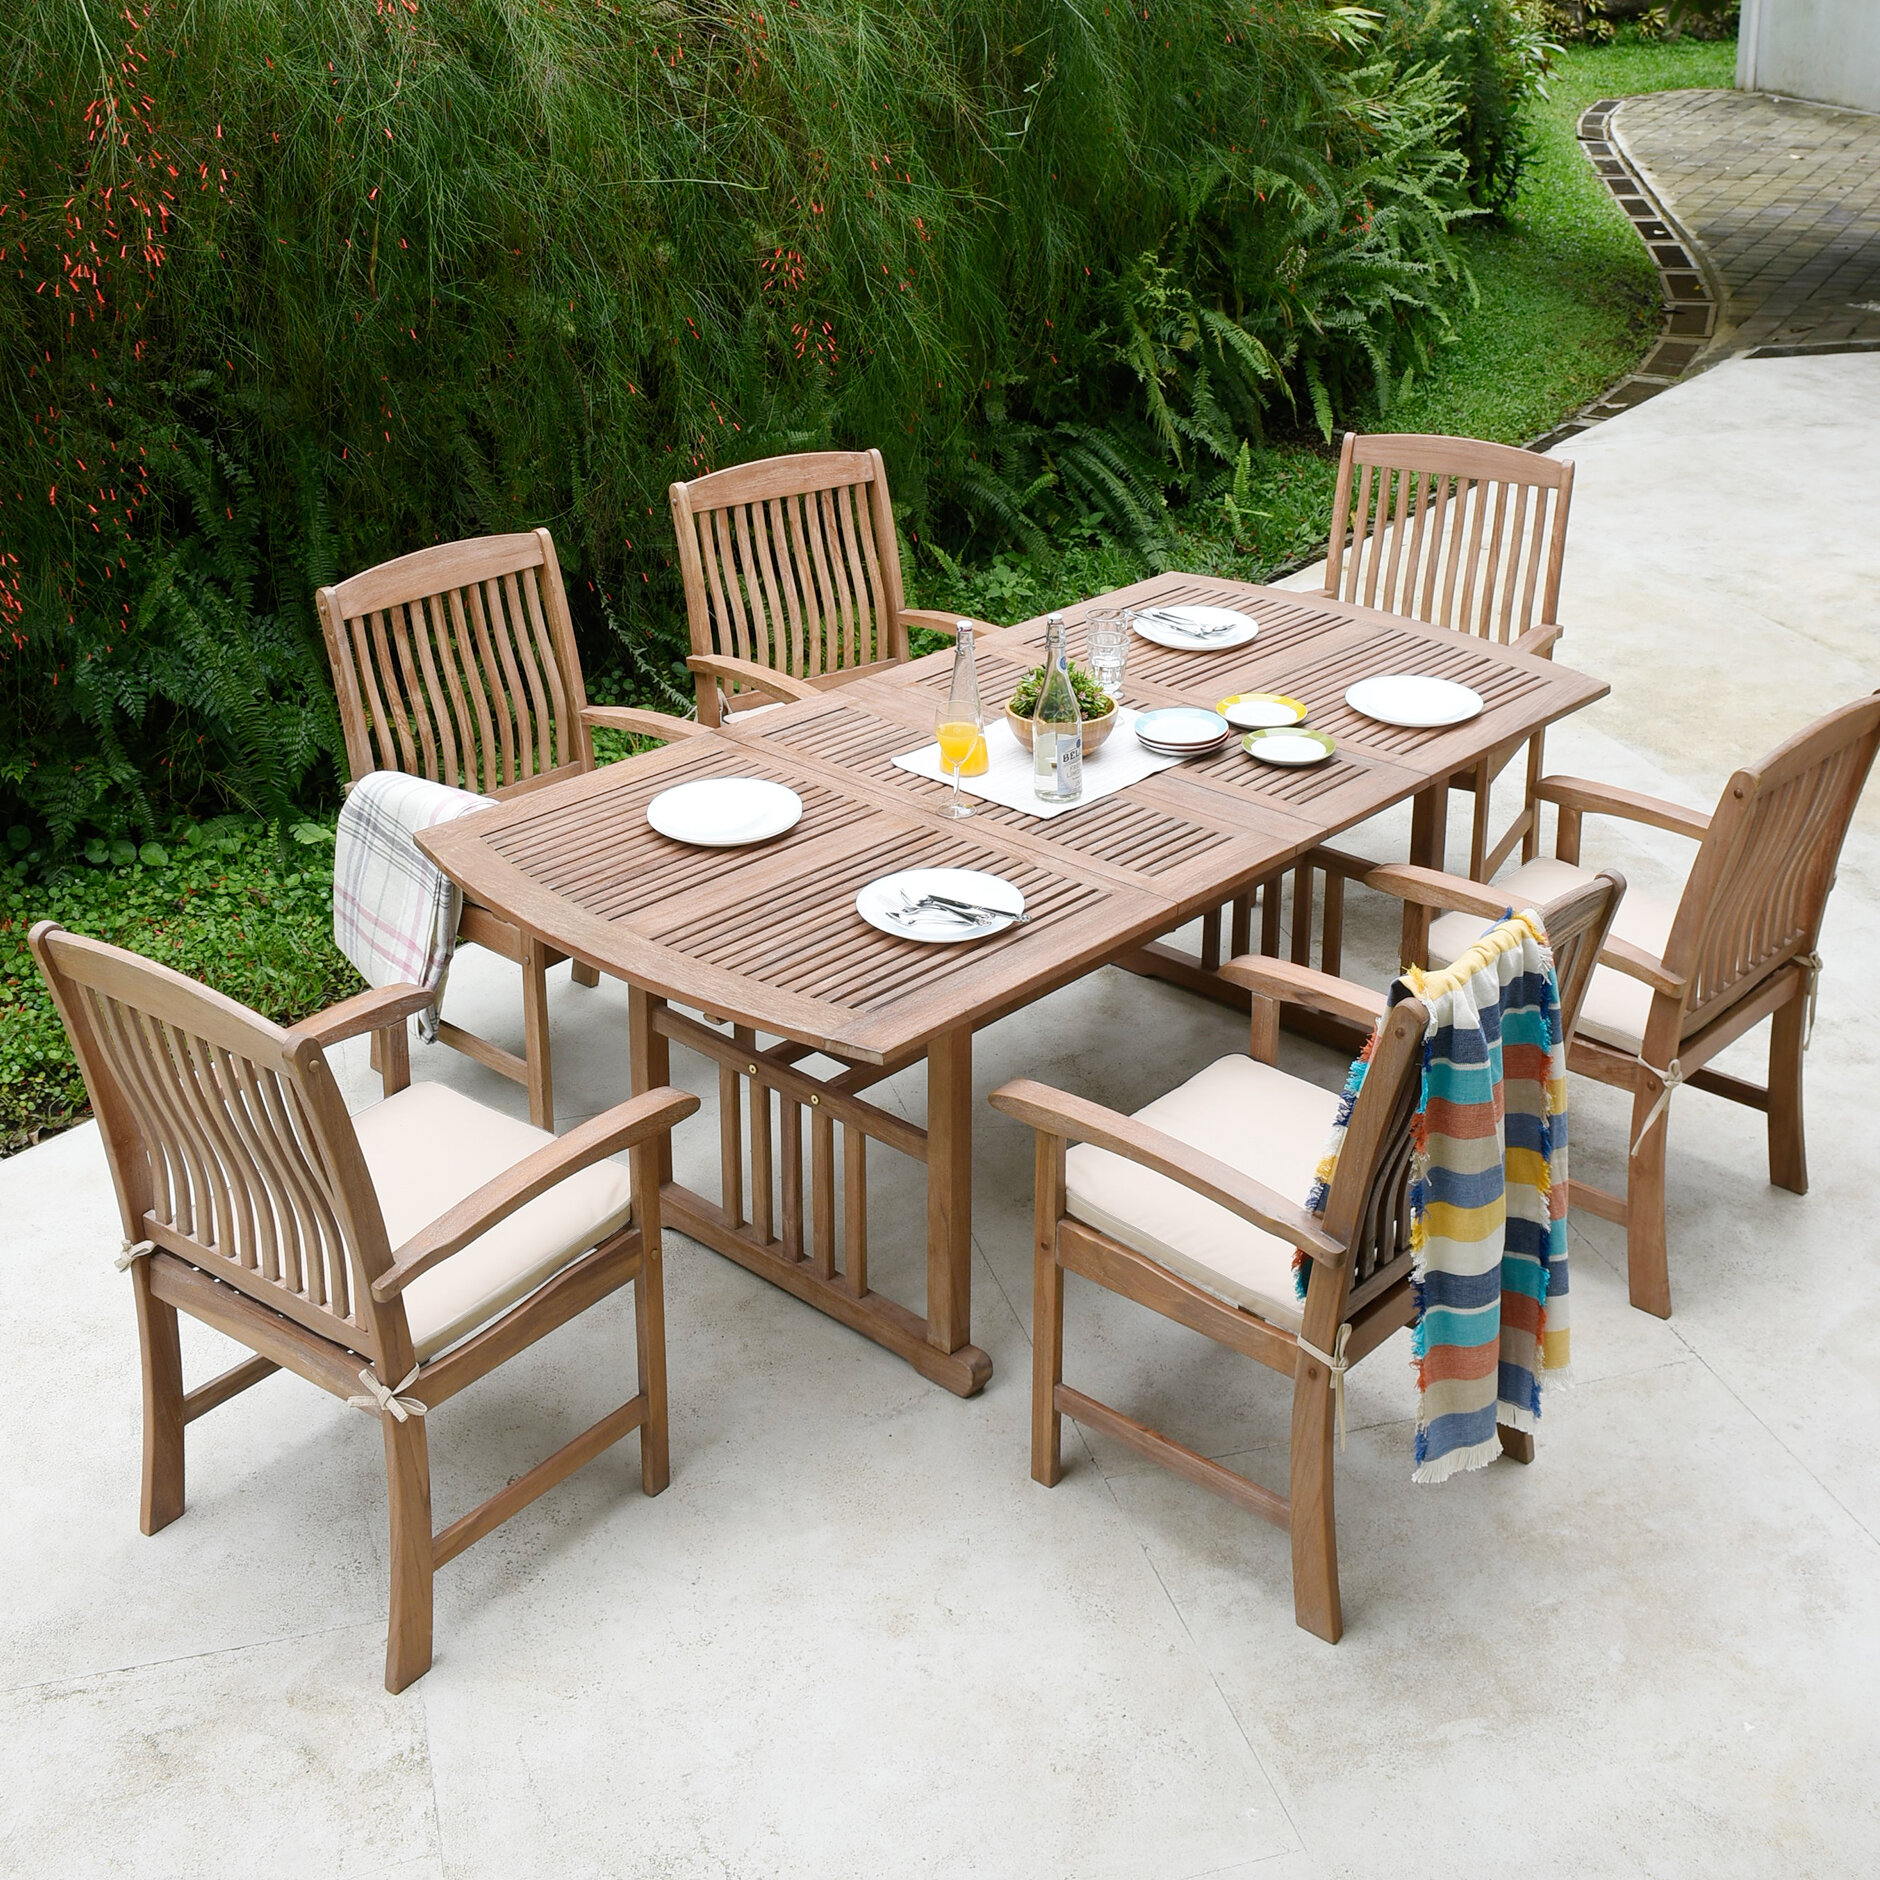 Gracie Oaks Corpuz 7 Piece Teak Dining Set With Cushions Reviews Wayfair